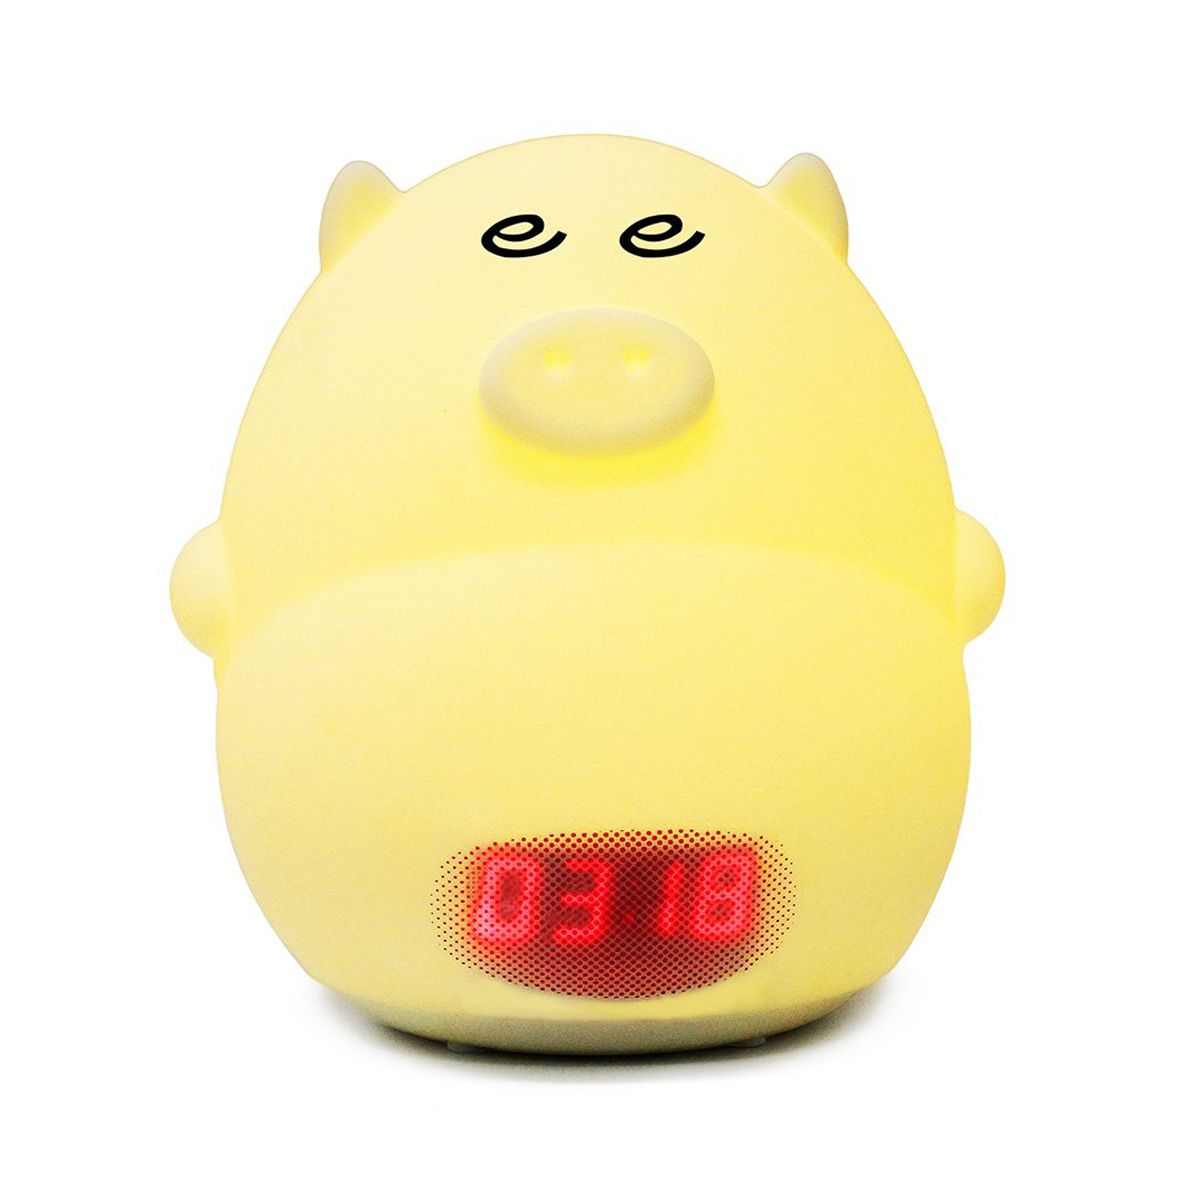 Night Light Alarm Clock for Kids Cute Pig Clock USB LED Lights Silicone Baby Lamp Color Changing 2 Alarms, 3 Sounds, 7 Colors,